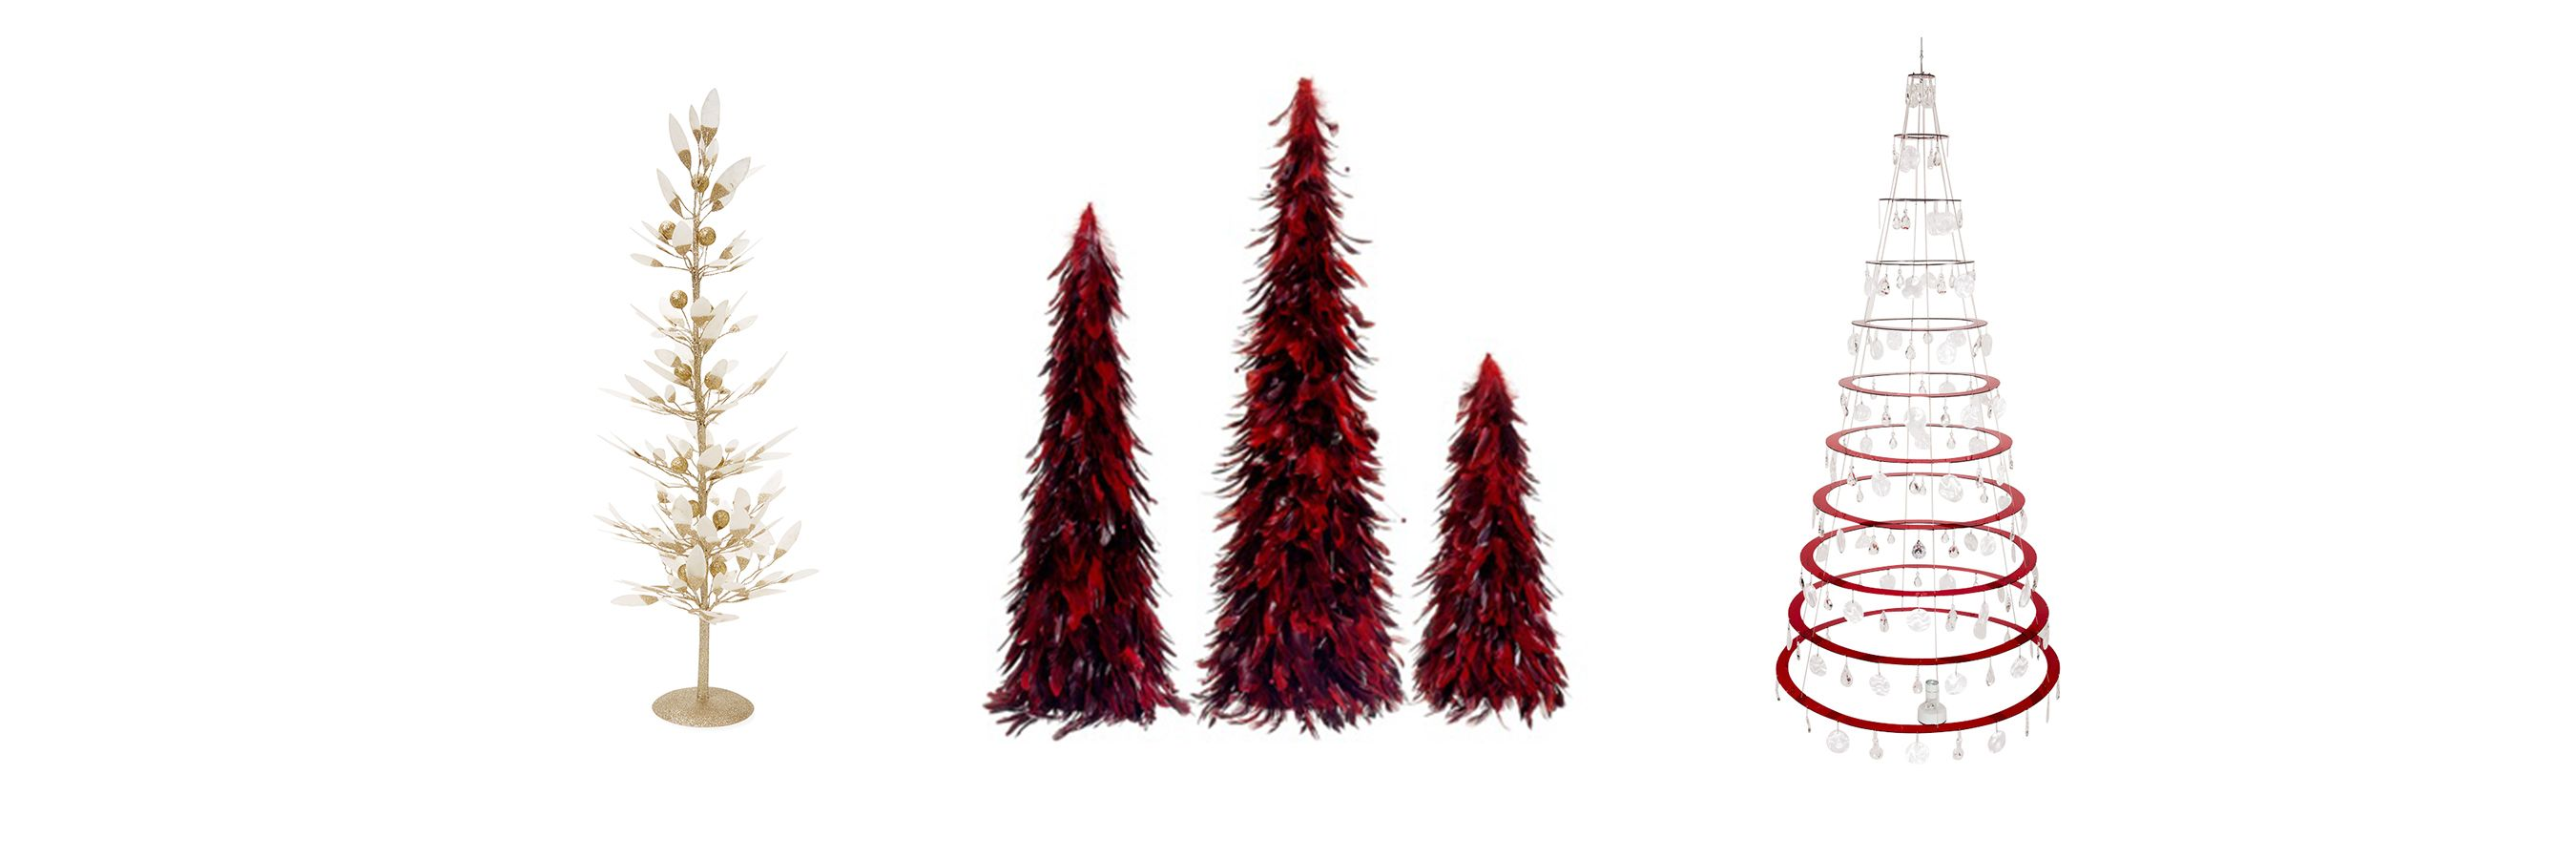 27 Modern Christmas Trees For Holiday Decorations - Contemporary ...